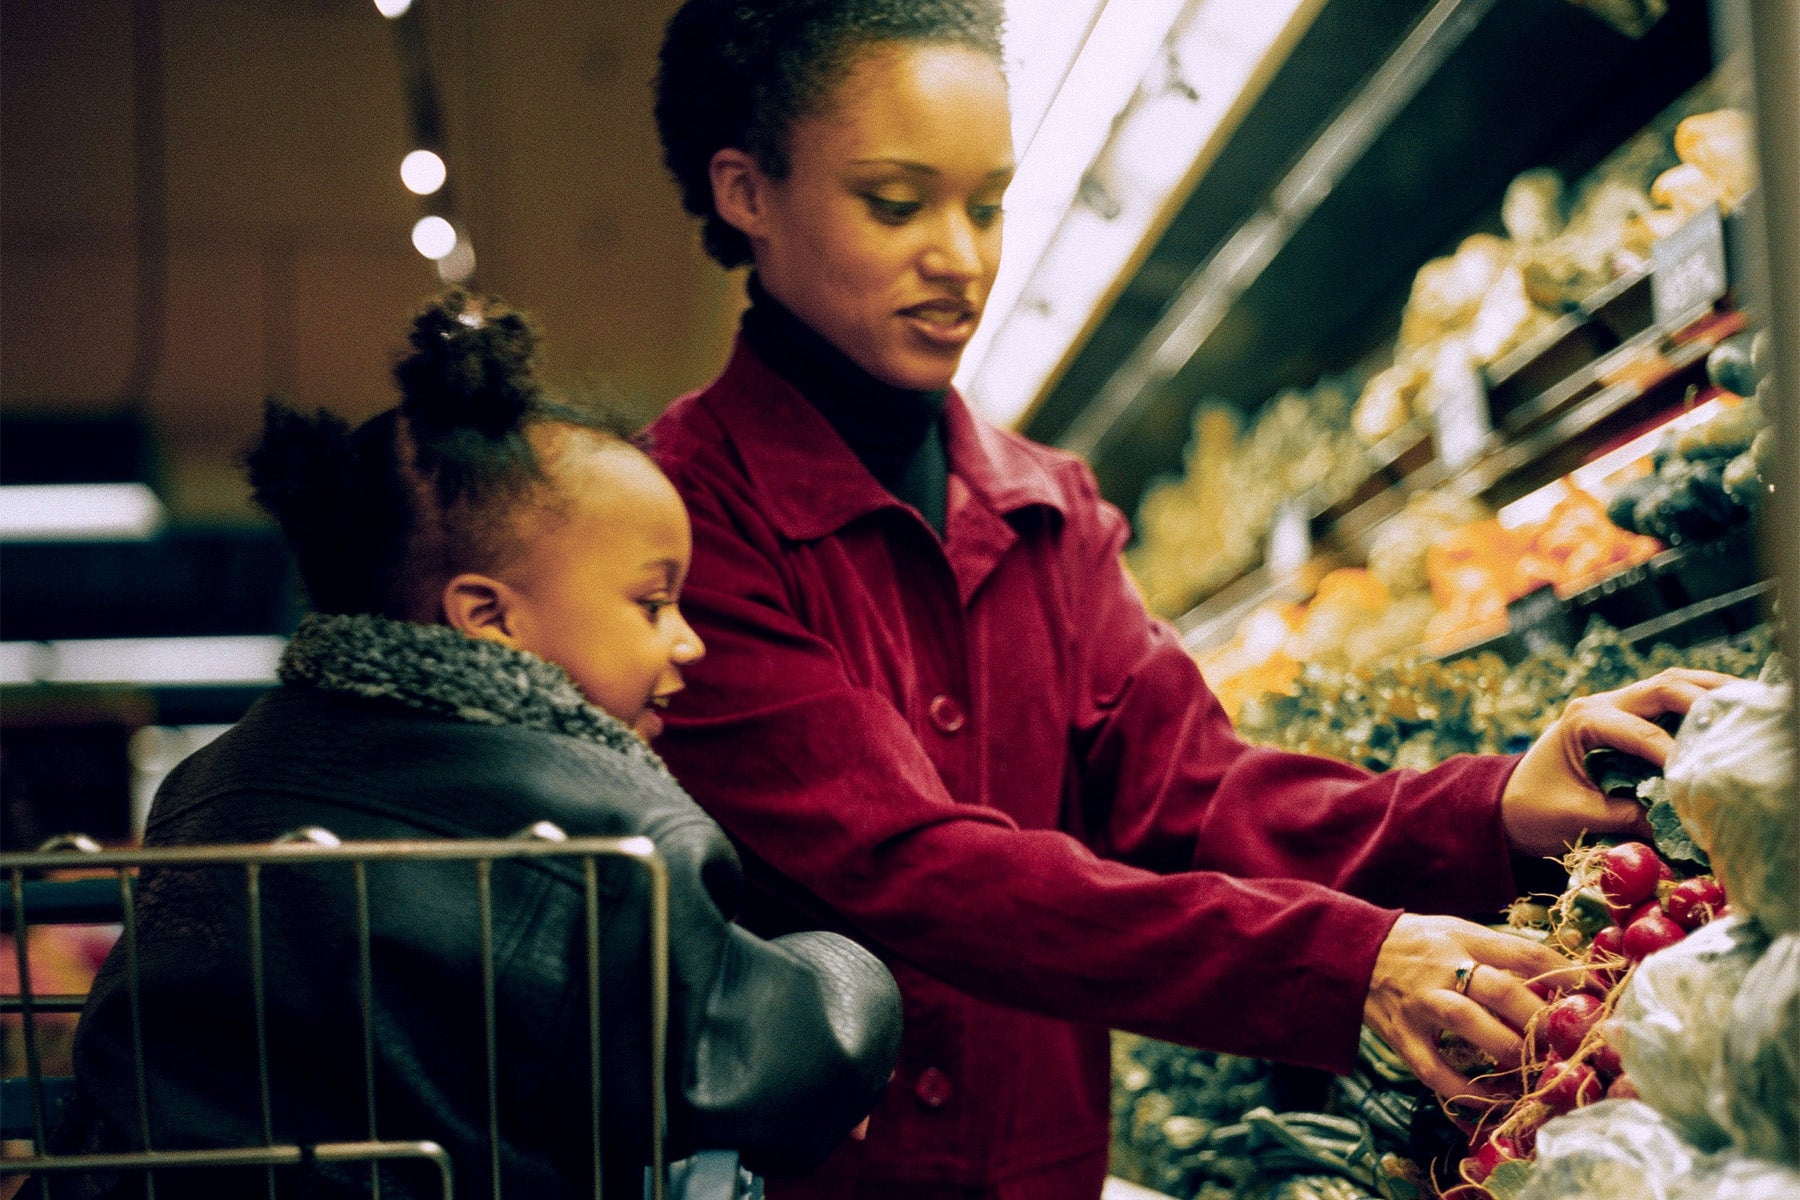 Black woman and child grocery shopping in produce section.